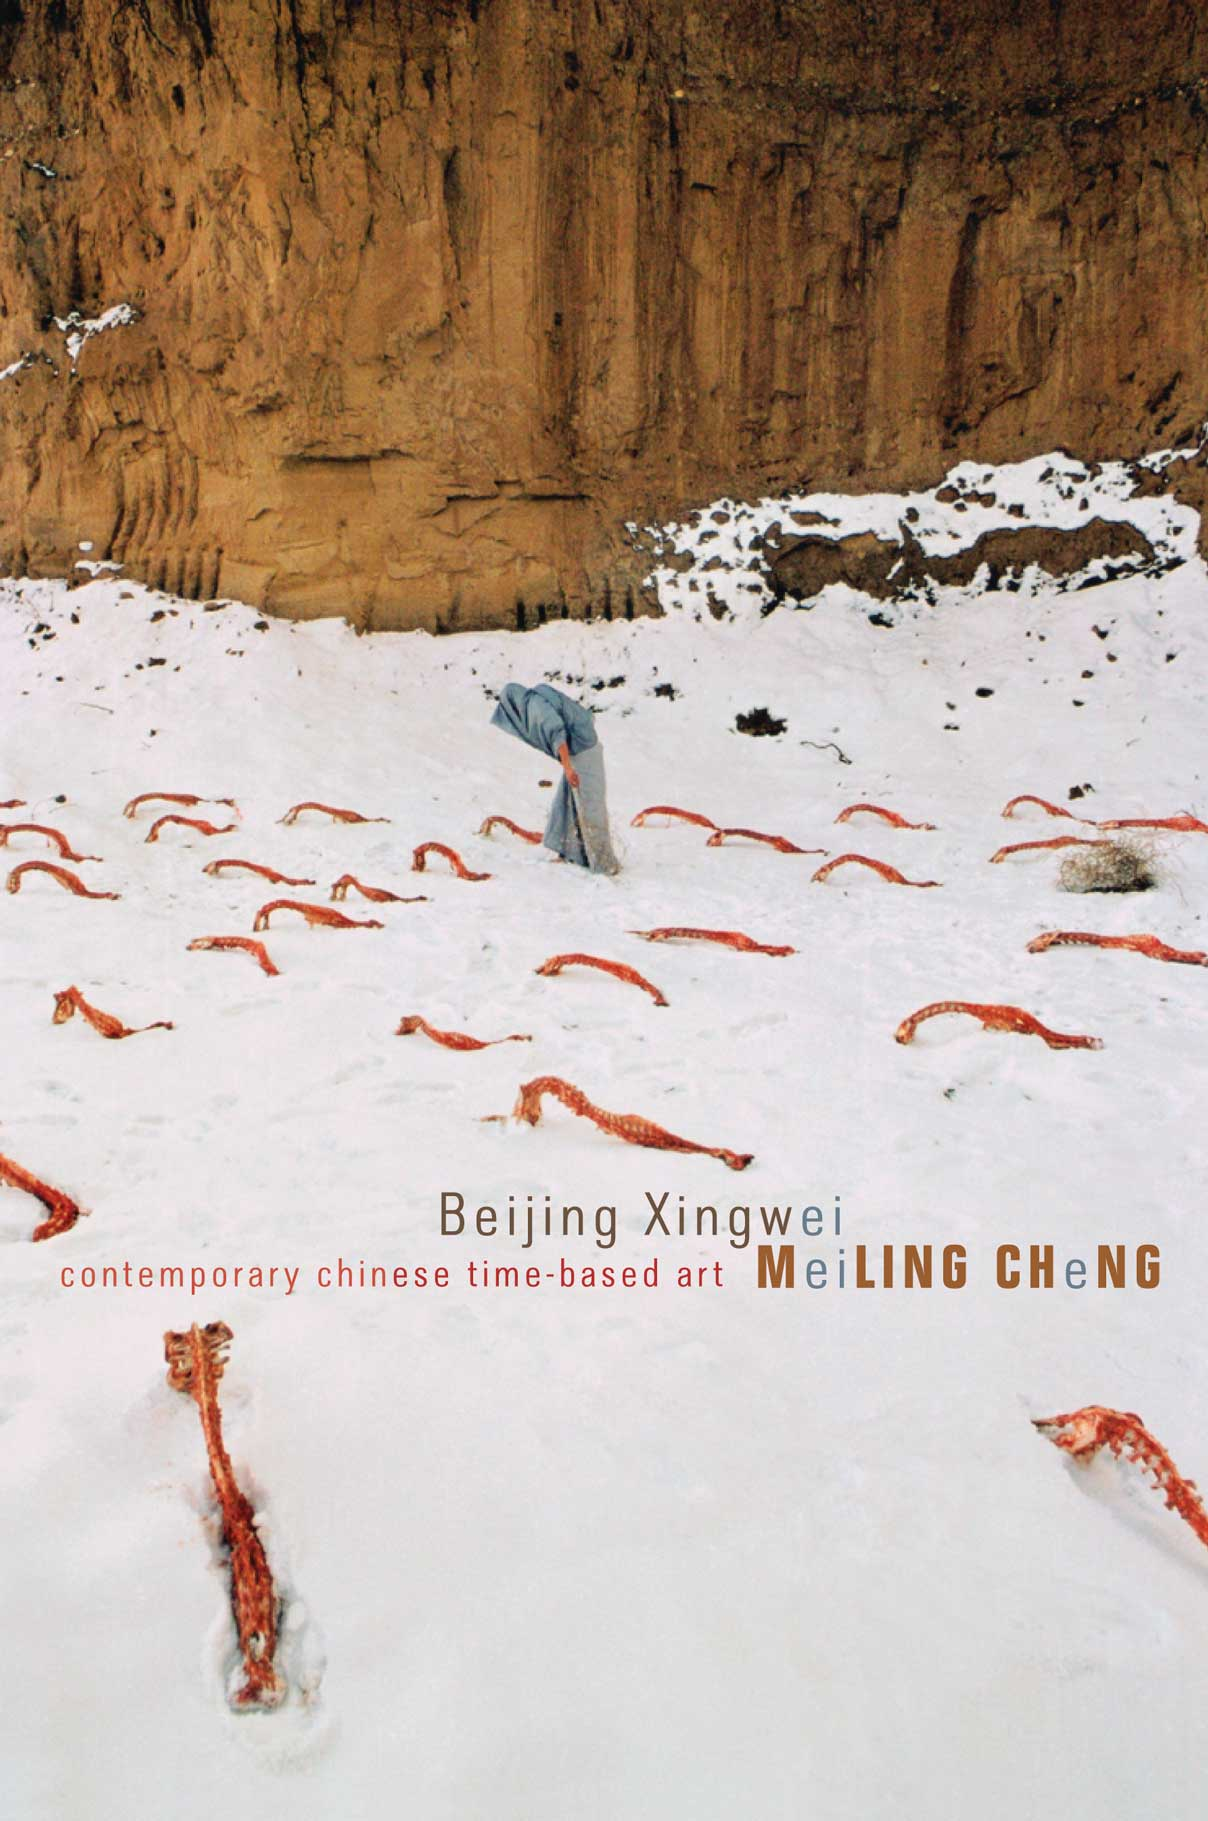 Beijing Xingwei:  Contemporary Chinese Time-Based Art by Meiling Cheng |  Seagull Books